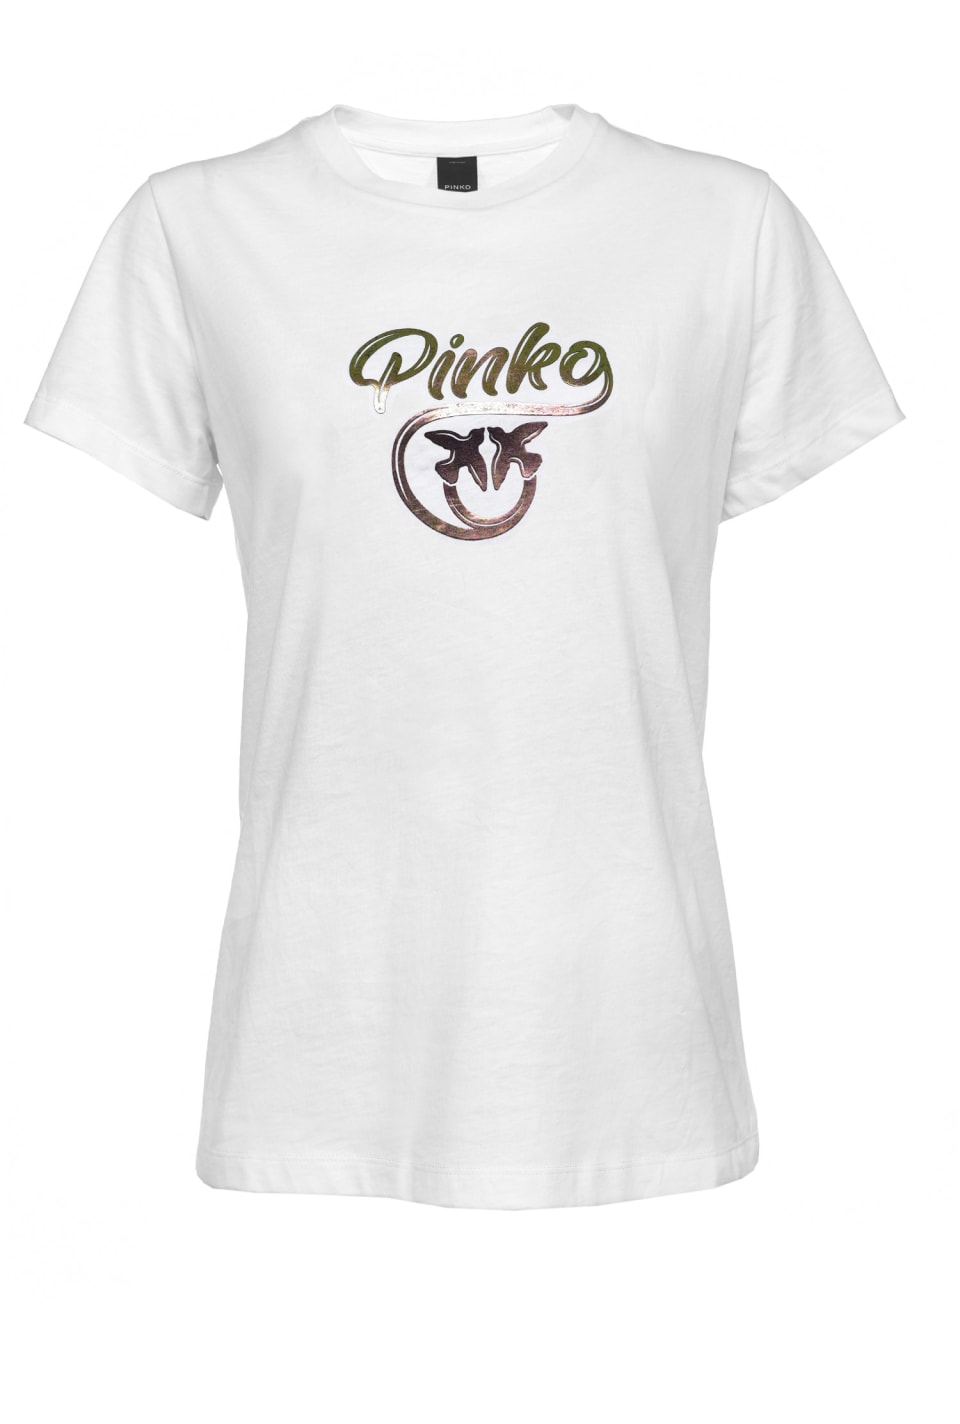 T-shirt PINKO Love Birds - Pinko